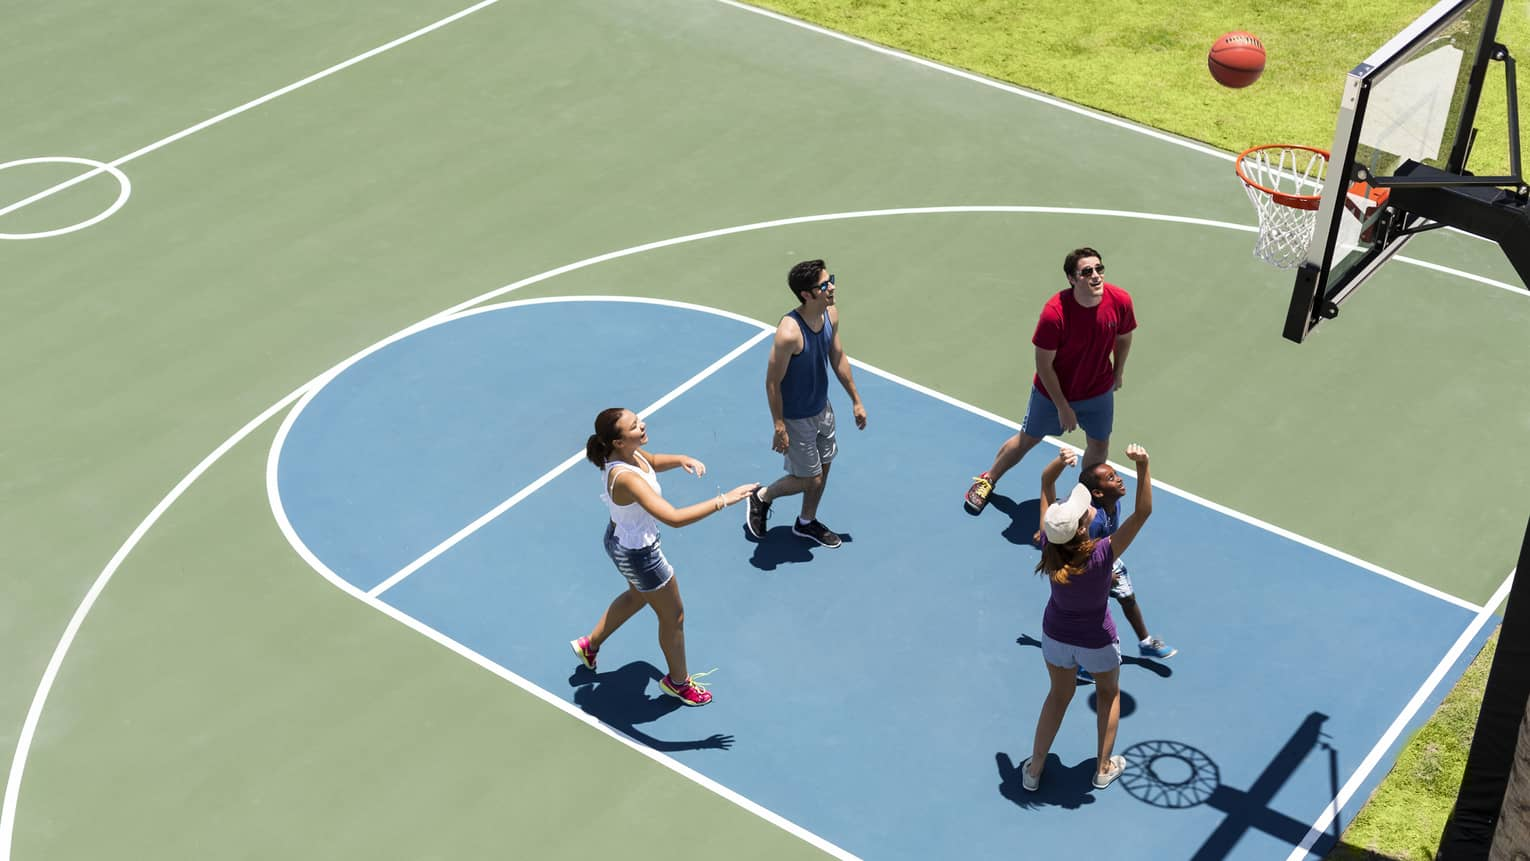 Aerial view of group of friends on basketball court, throwing ball in net